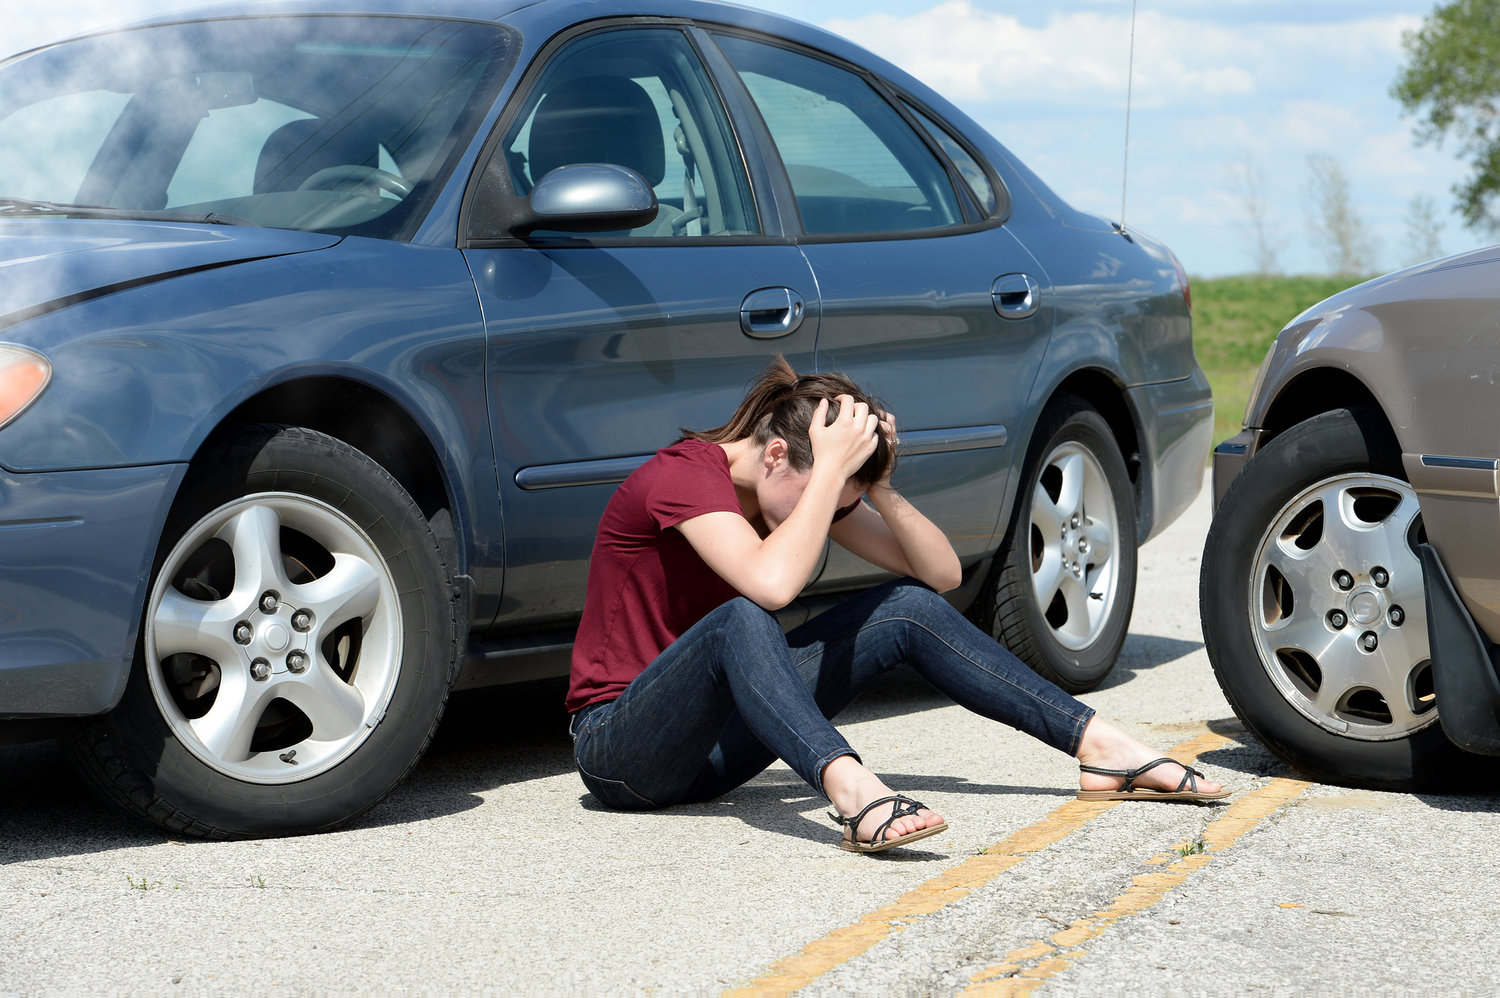 A Comprehensive Guide on Car Crash Injuries from an Accident Lawyer Reeves & Lyle